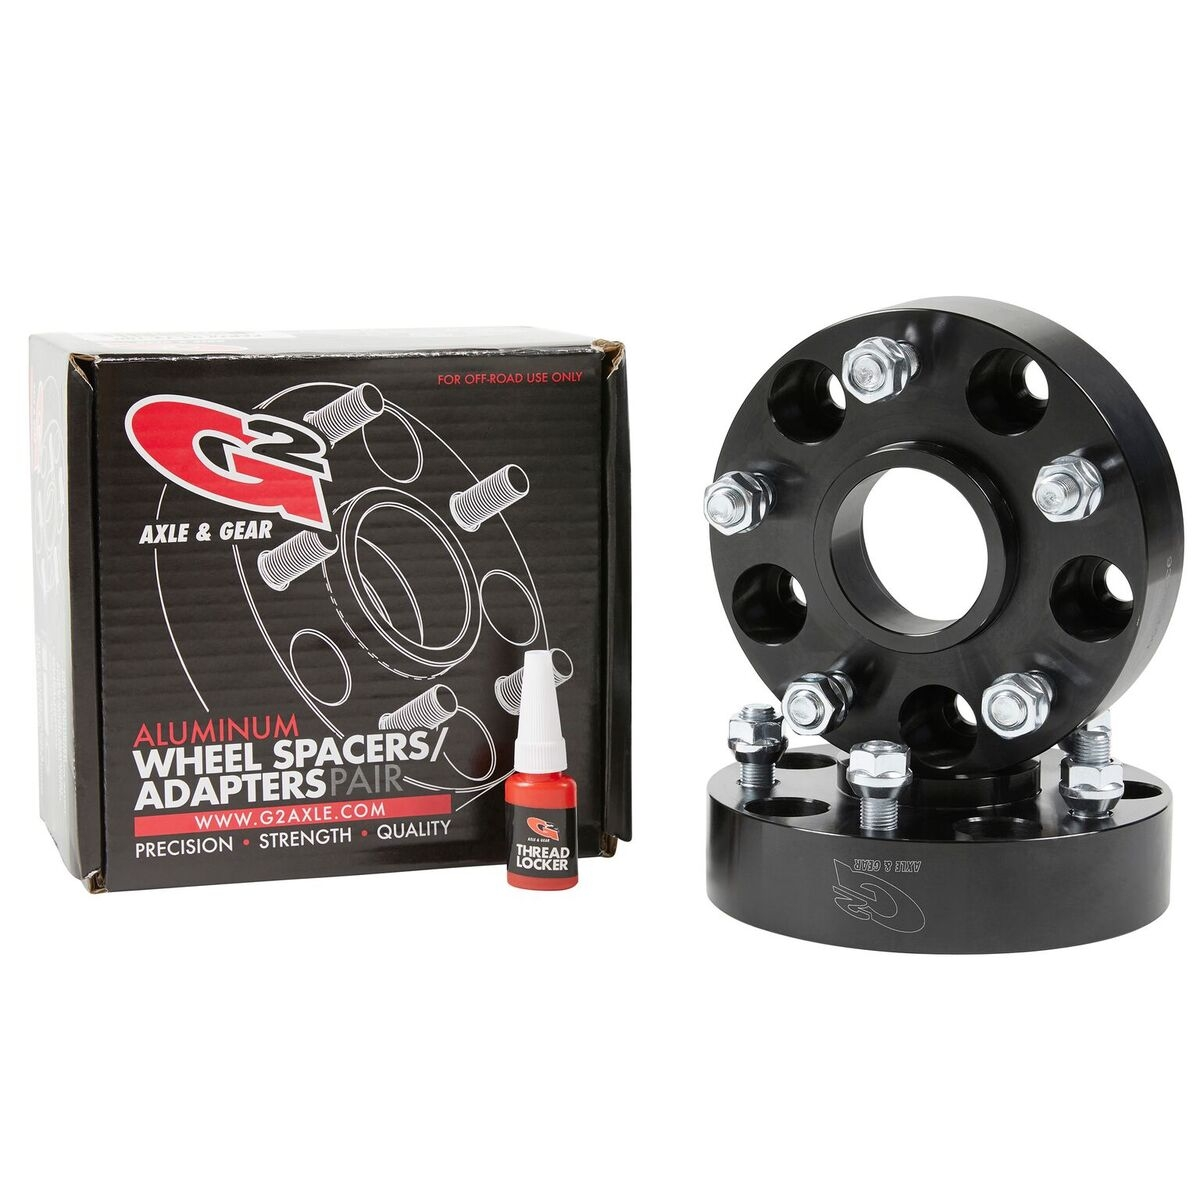 """Image of G2 Axle & Gear 1.75"""" Wheel Spacers, 5X5"""" Bolt Pattern, Black Aluminum - Pair"""